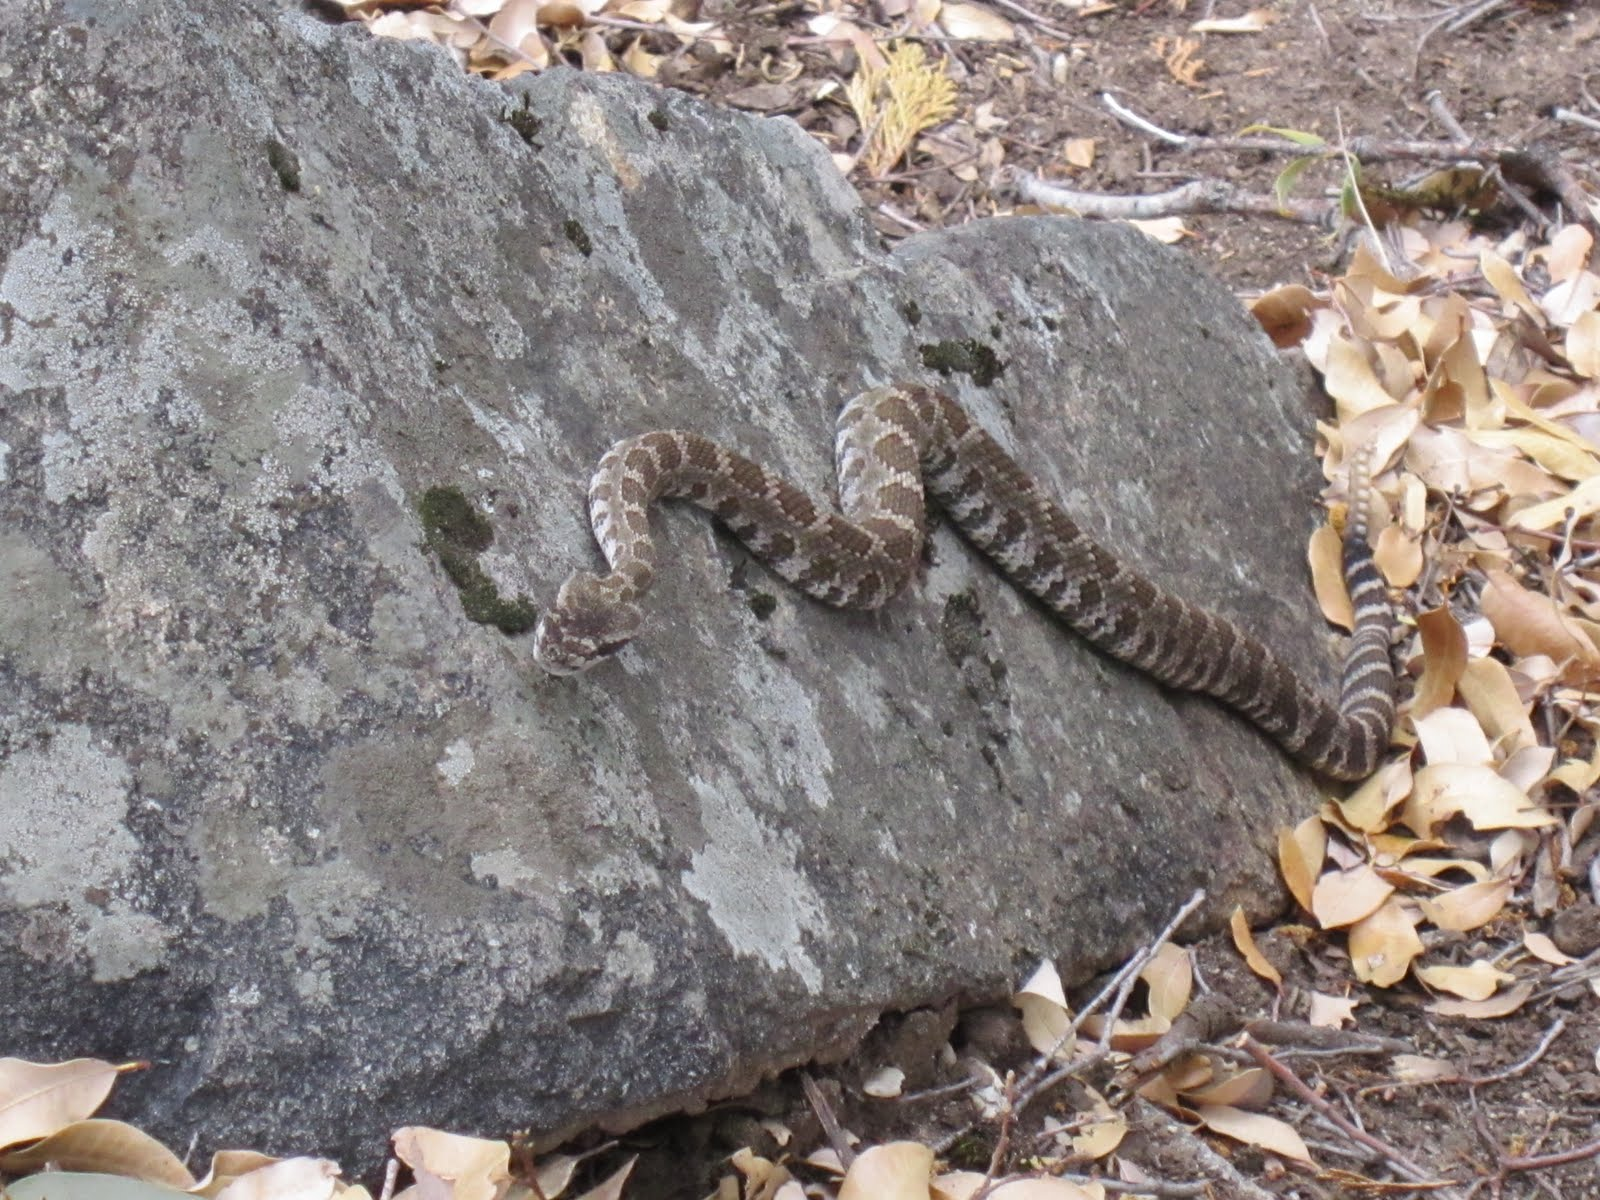 Rattlesnake near the North Fork American River in the Sierra Nevada. (Photo by Gambolin' Man)